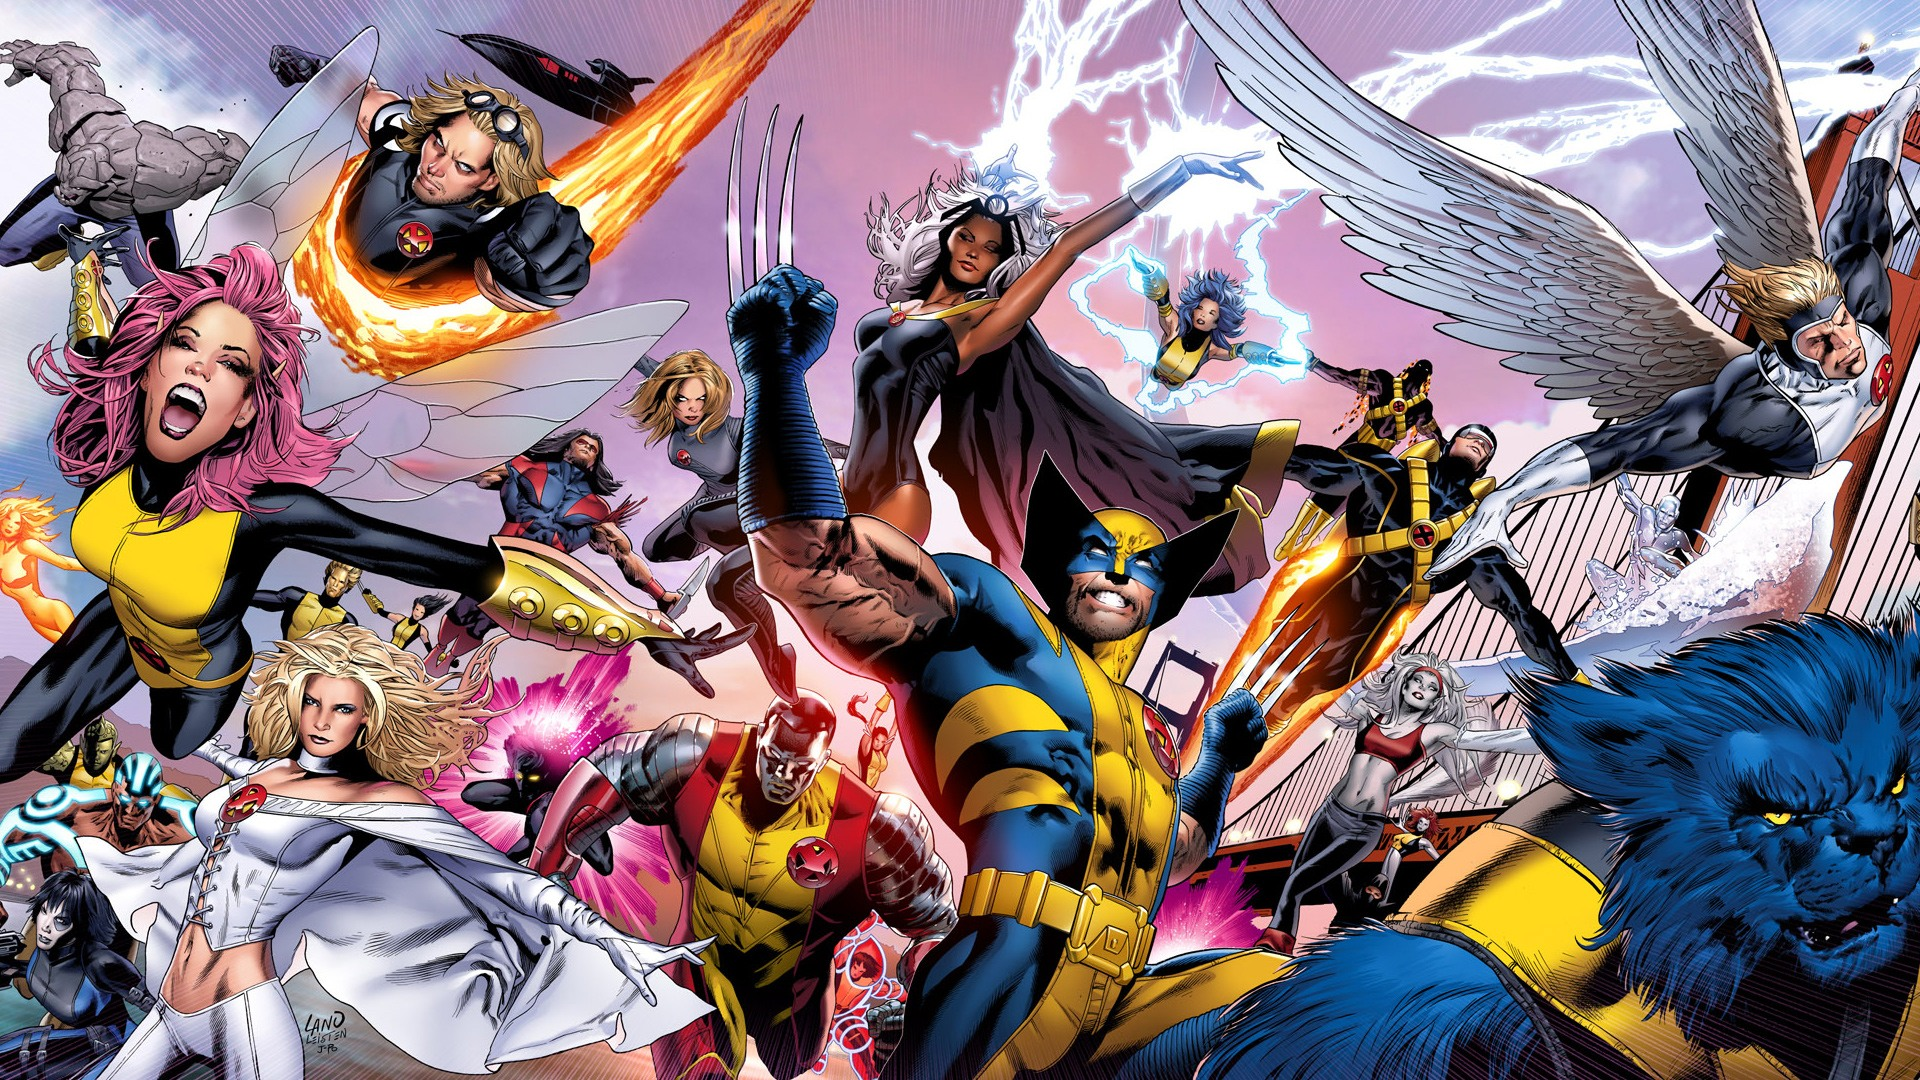 Astonishing X Men 31 desktop wallpaper 1920x1080